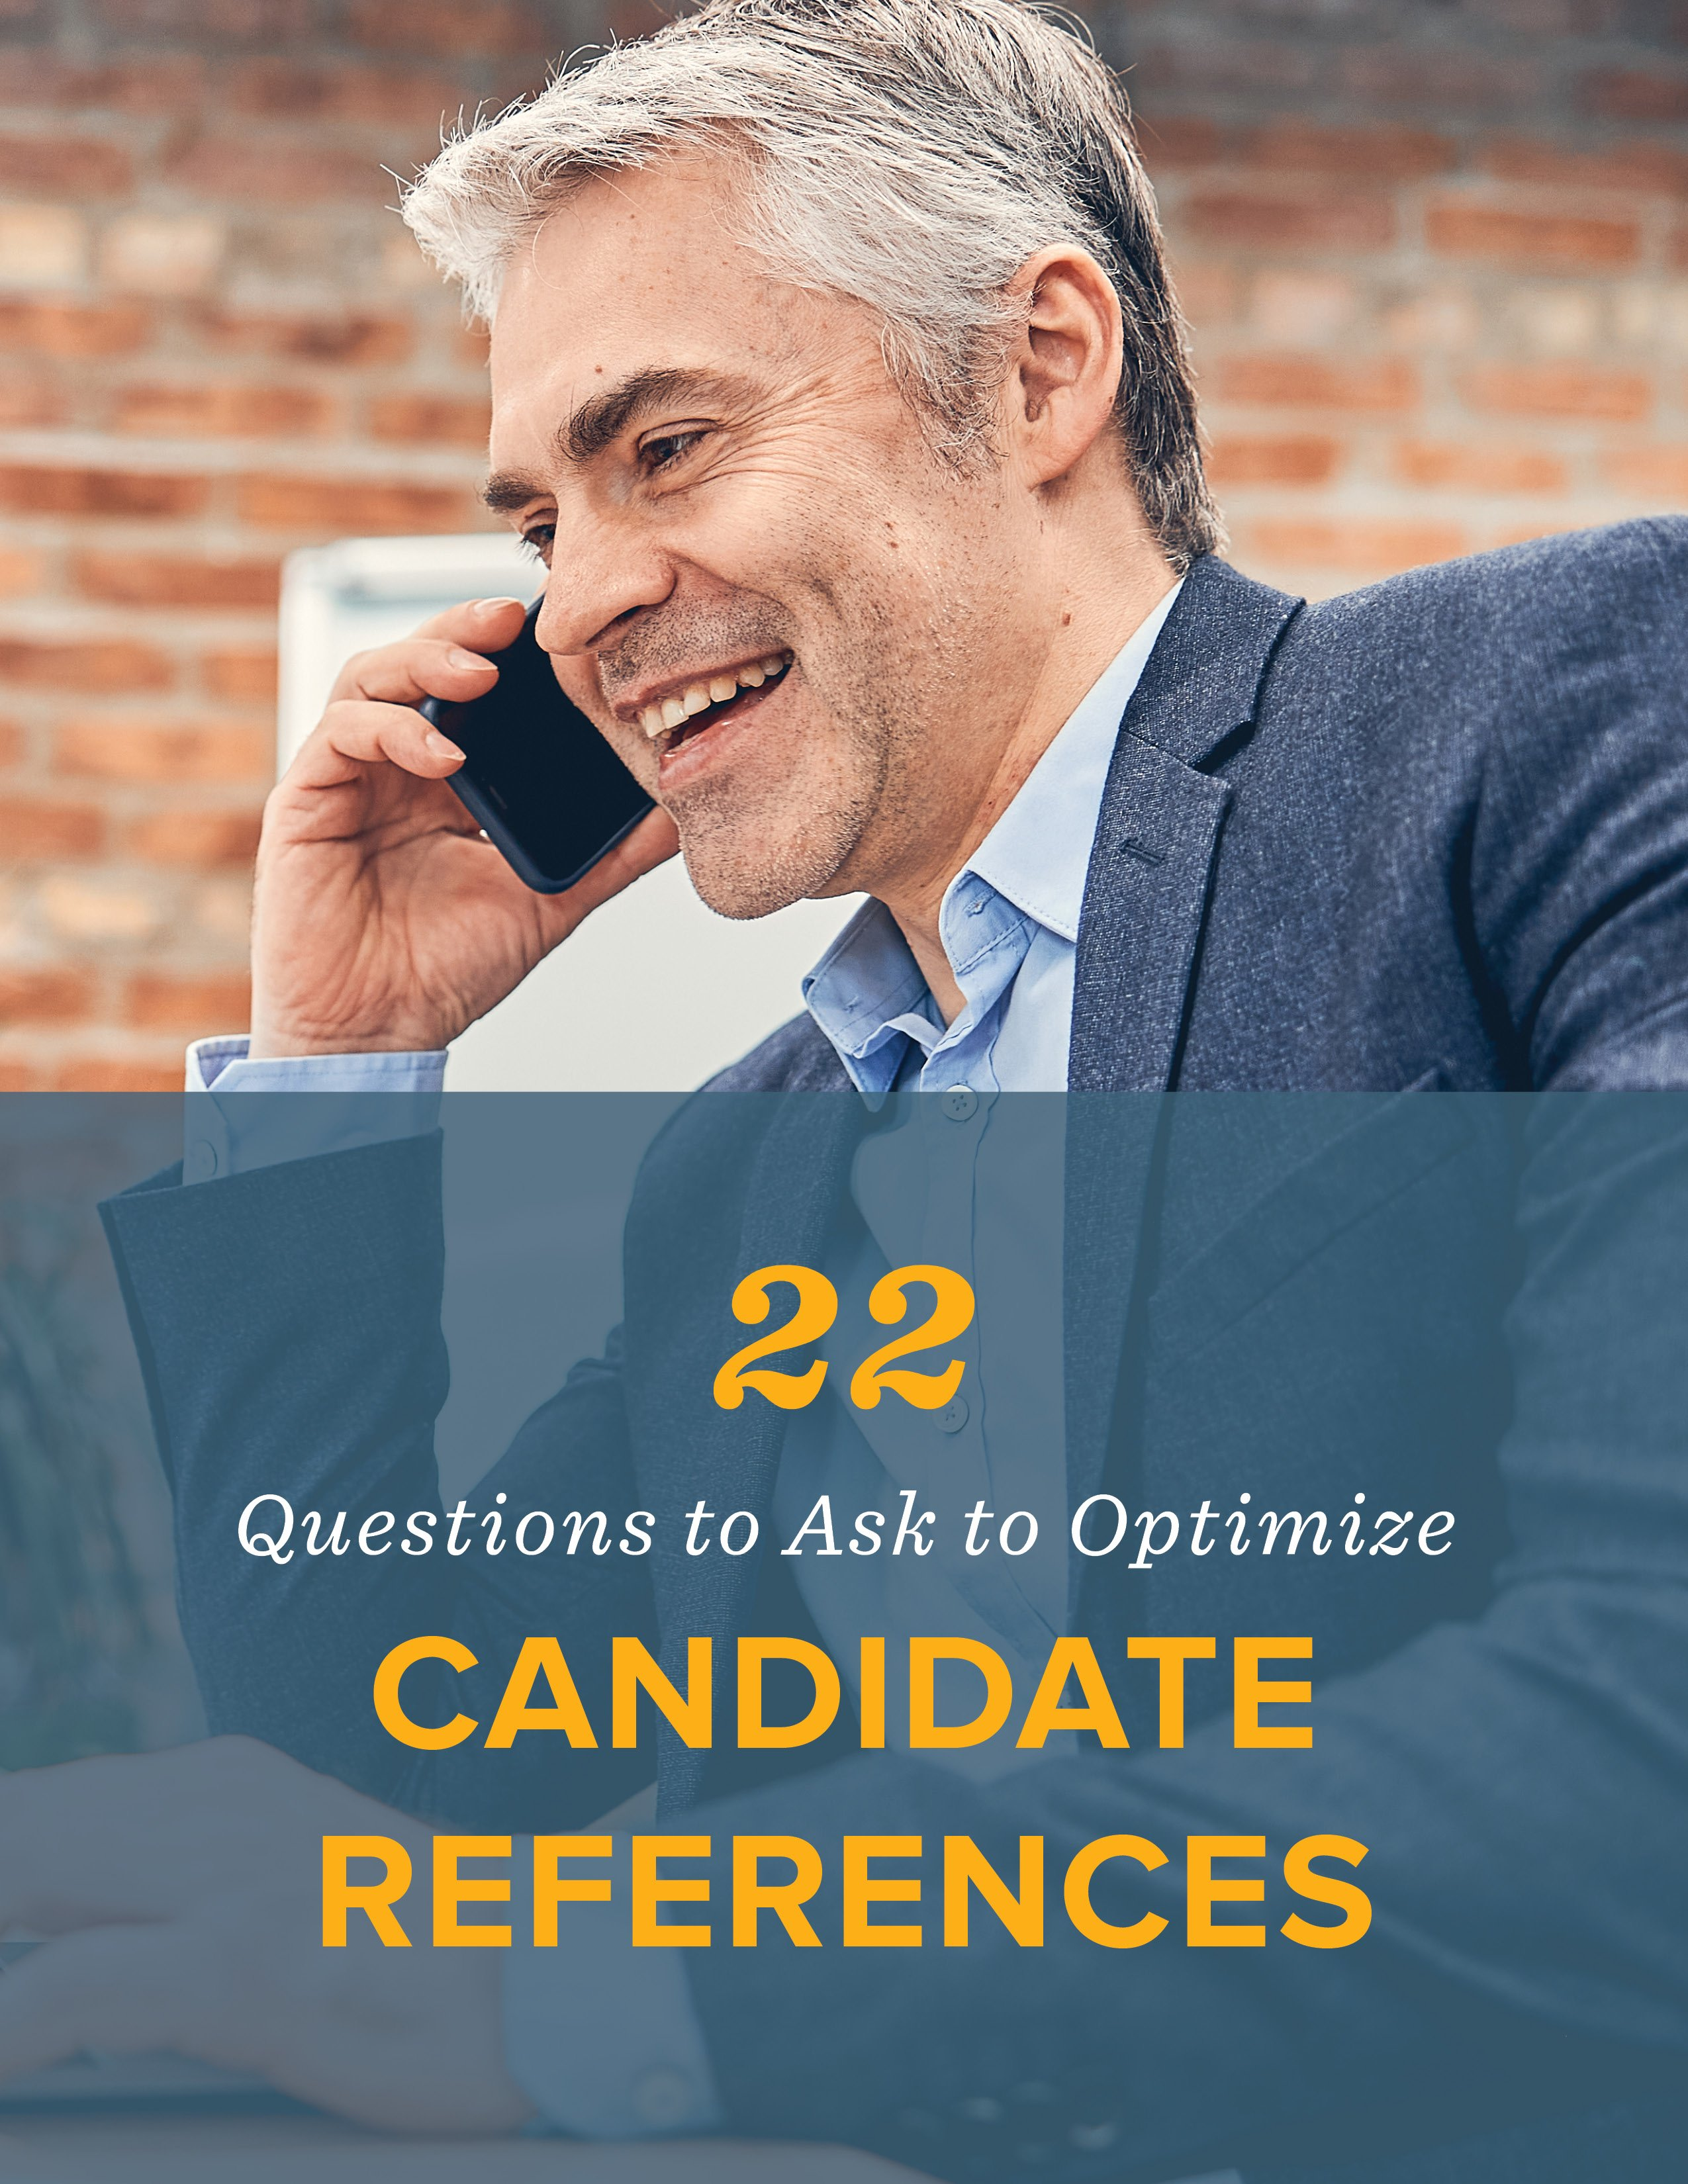 22 Questions to Ask to Optimize Candidate References